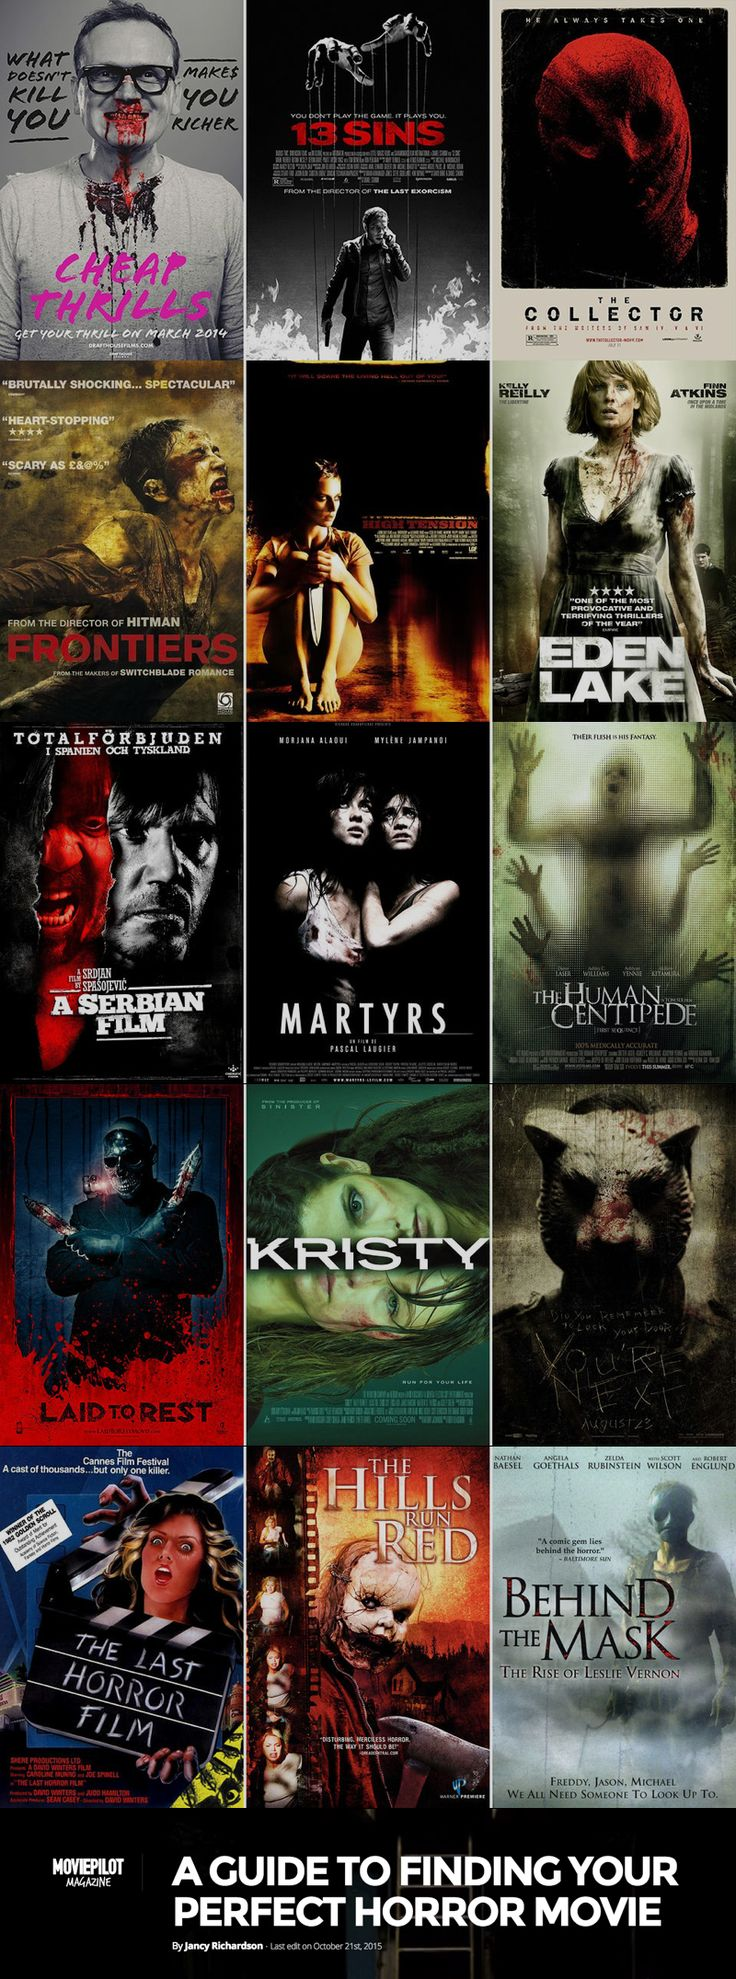 A Guide to Finding Your Perfect Horror Movie